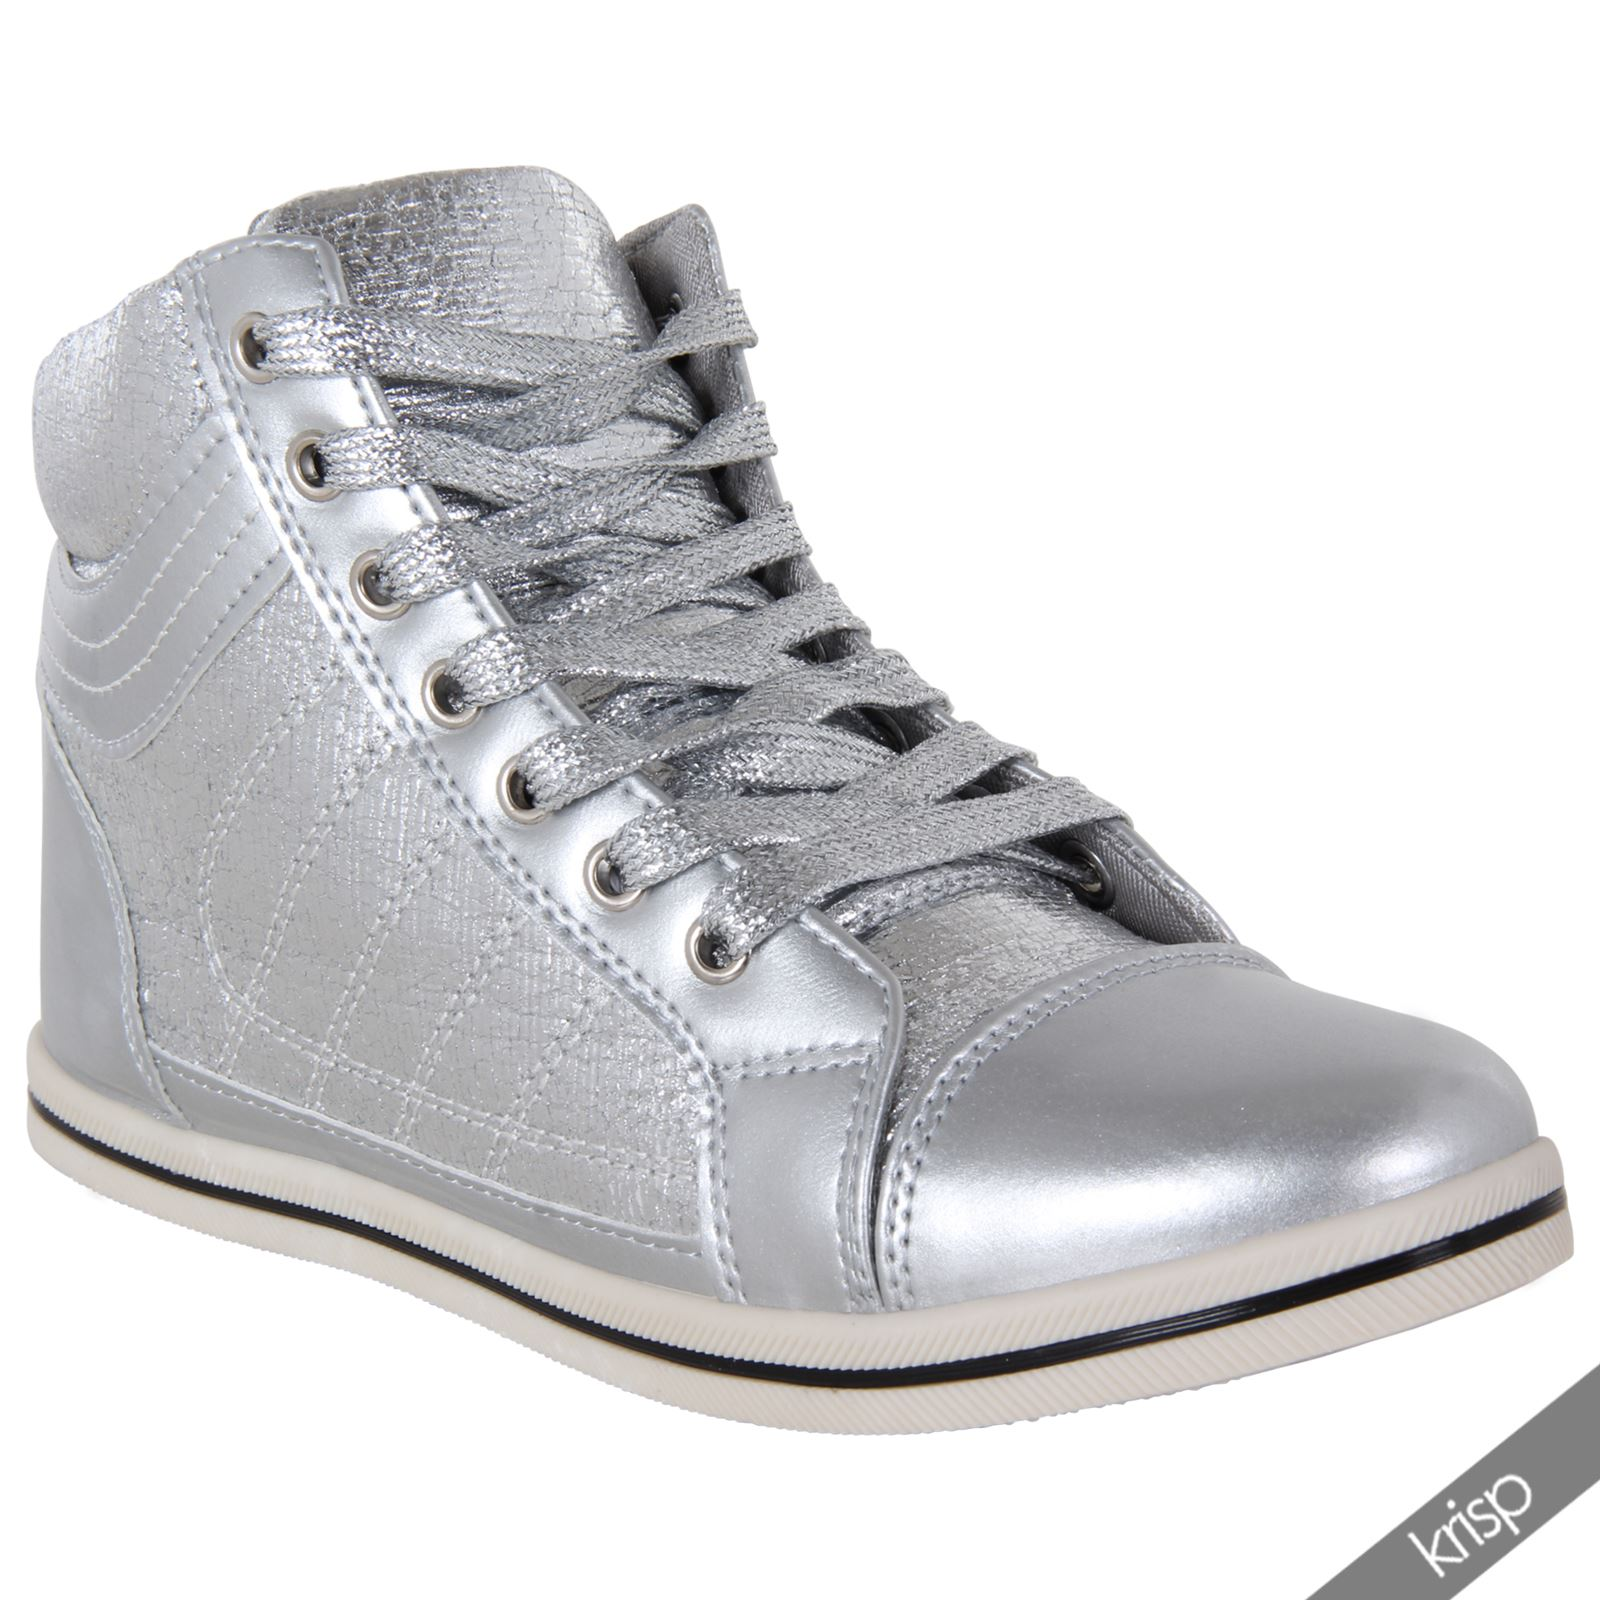 Free shipping BOTH ways on metallic womens shoes, from our vast selection of styles. Fast delivery, and 24/7/ real-person service with a smile. Click or call